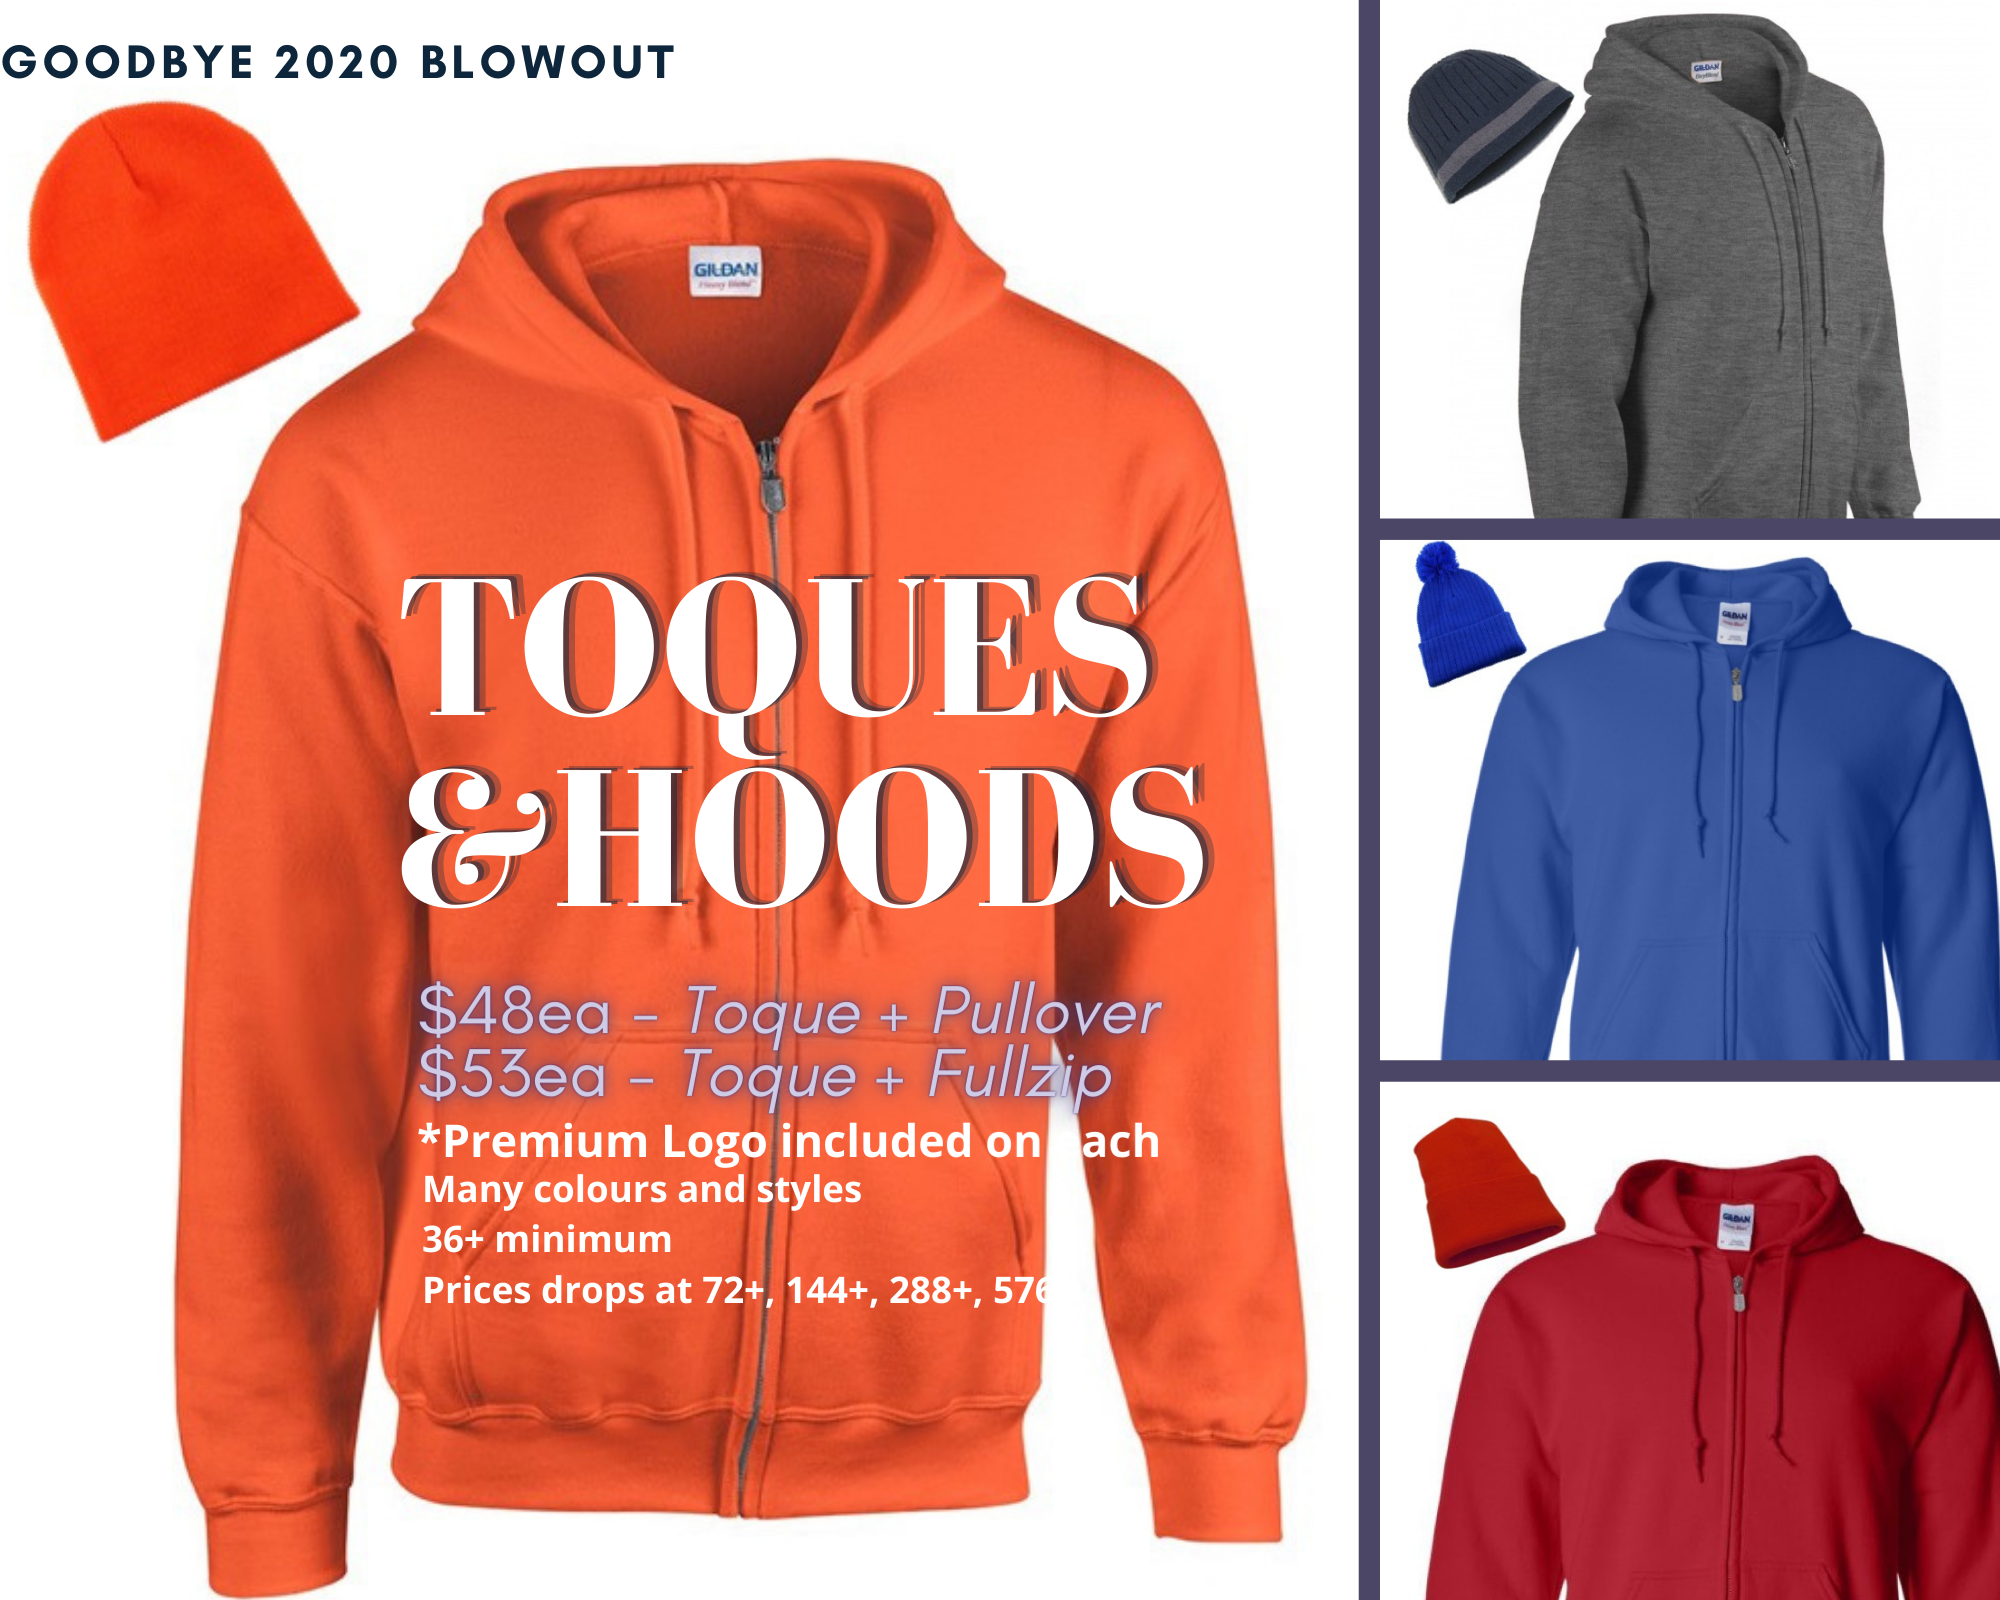 Toques & Hoodies Blowout